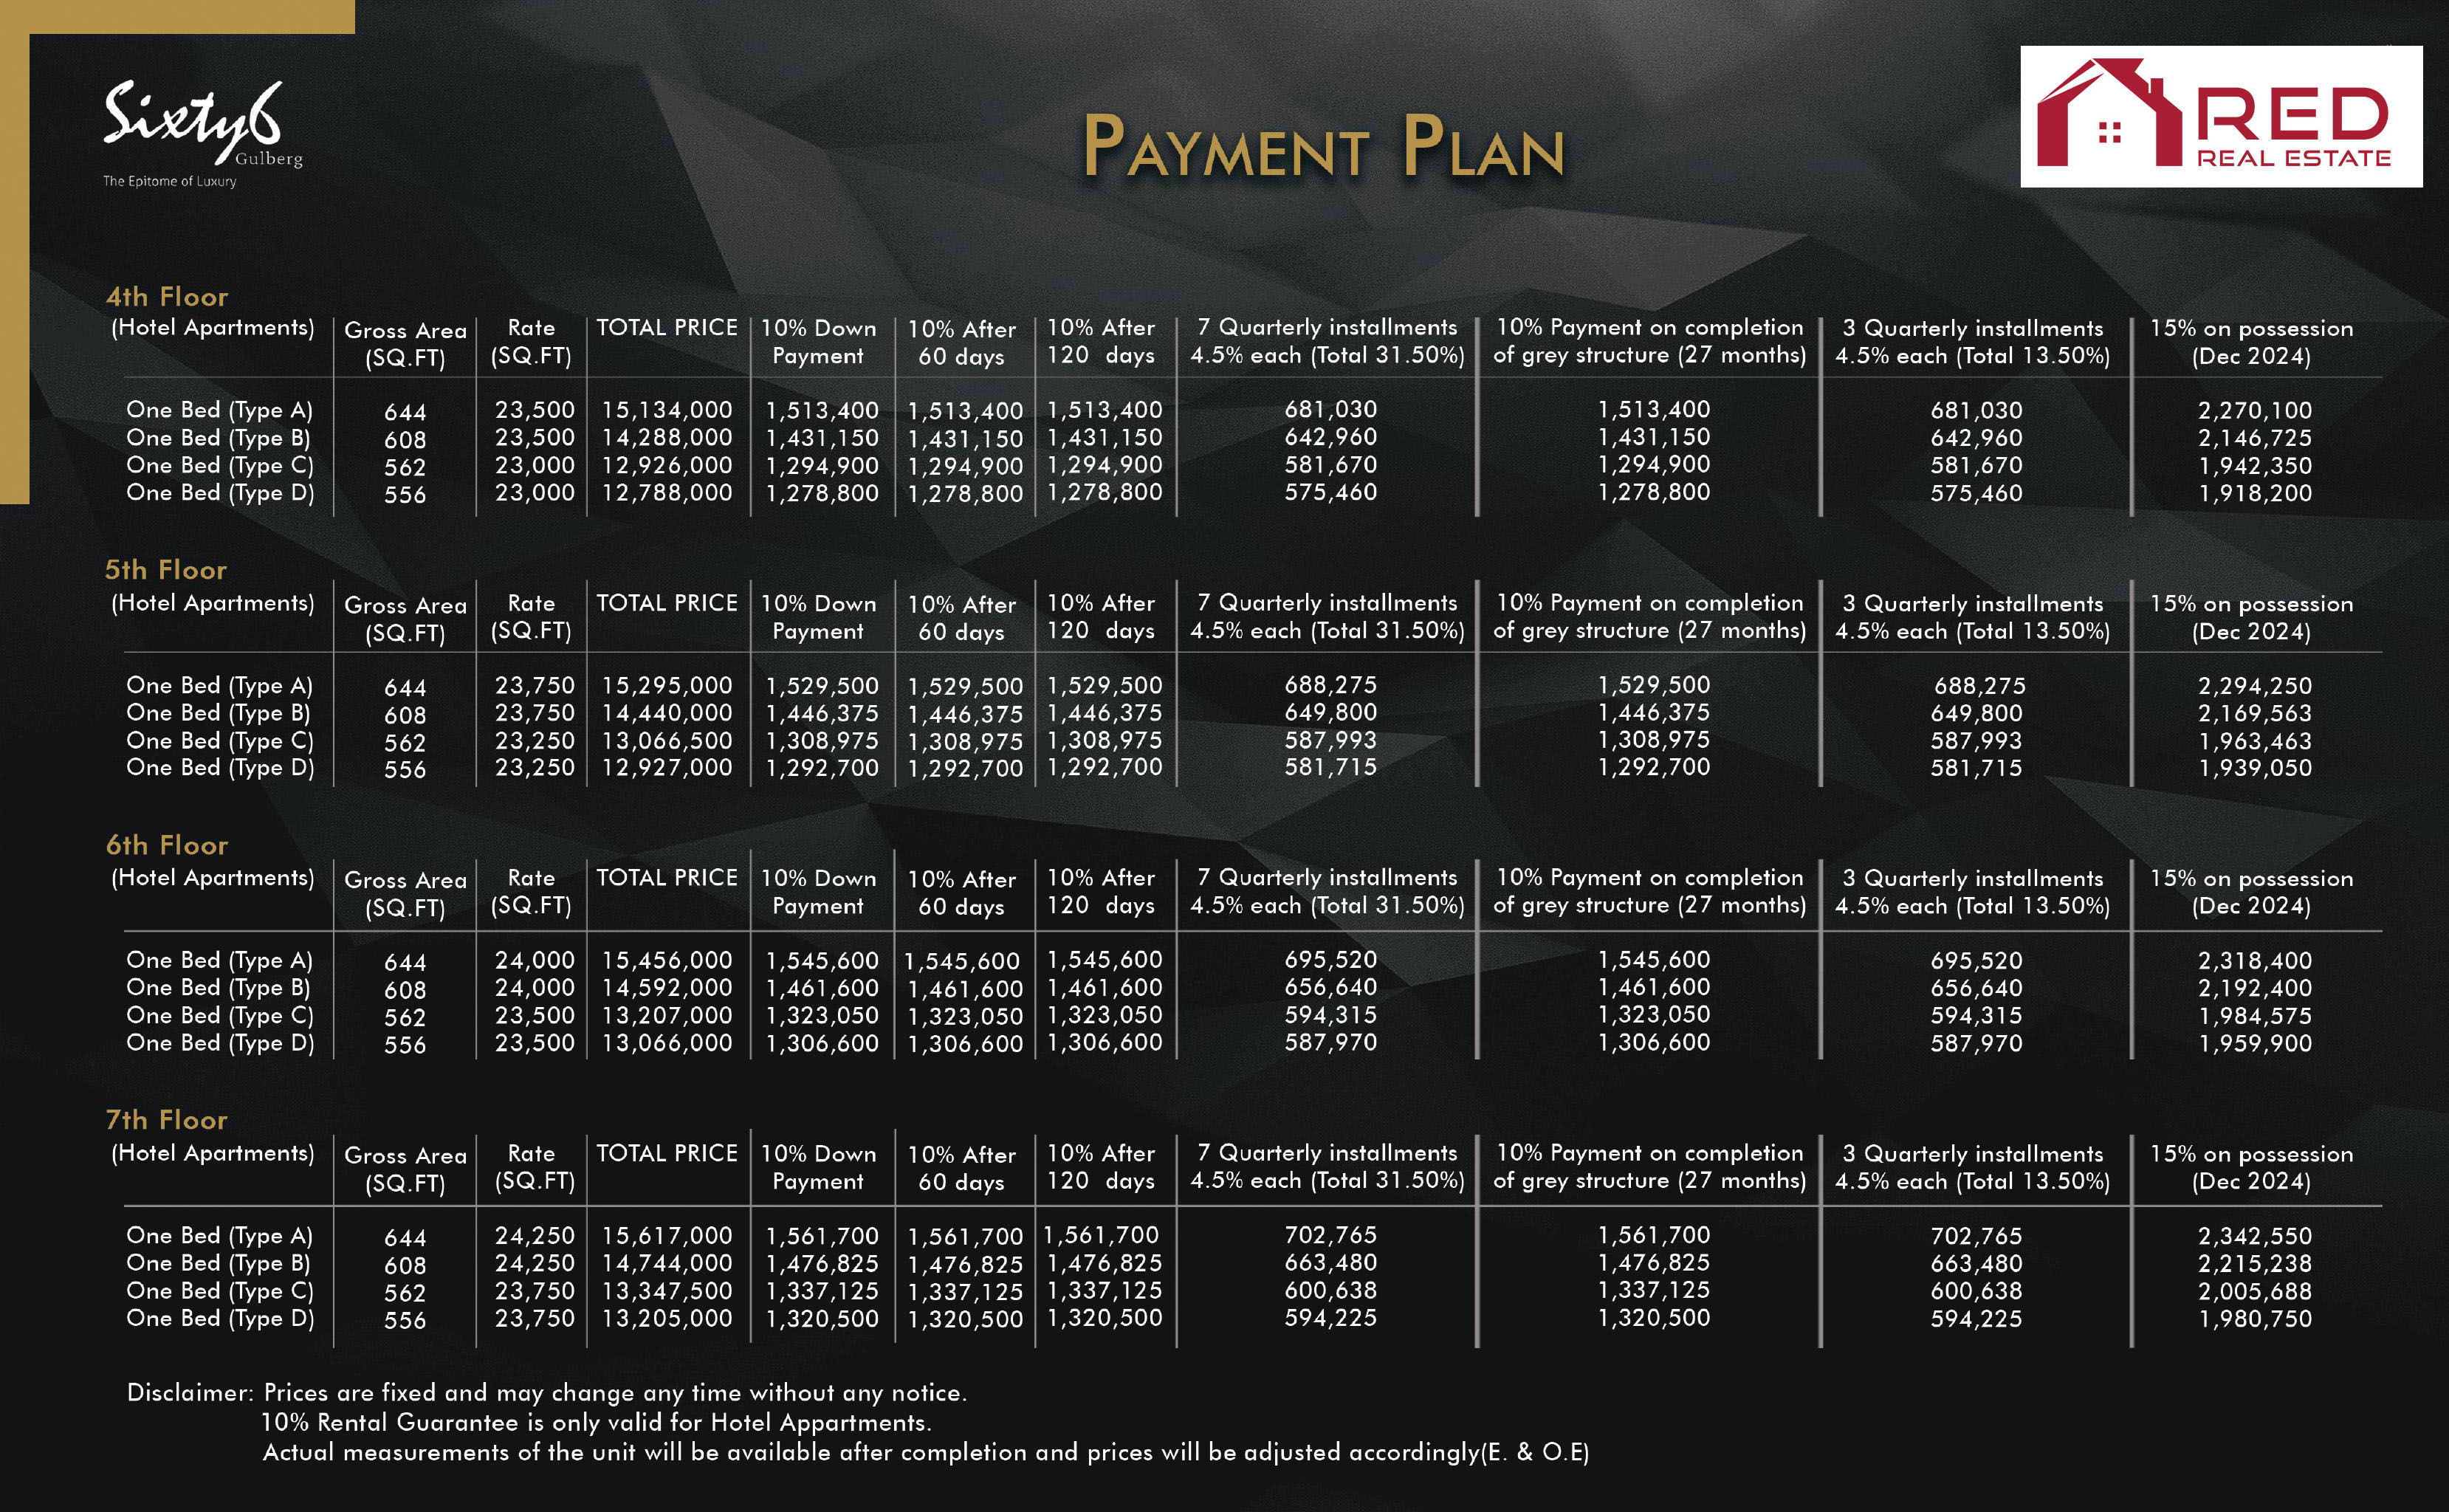 Sixty6 Gulberg Apartments Payment Plan